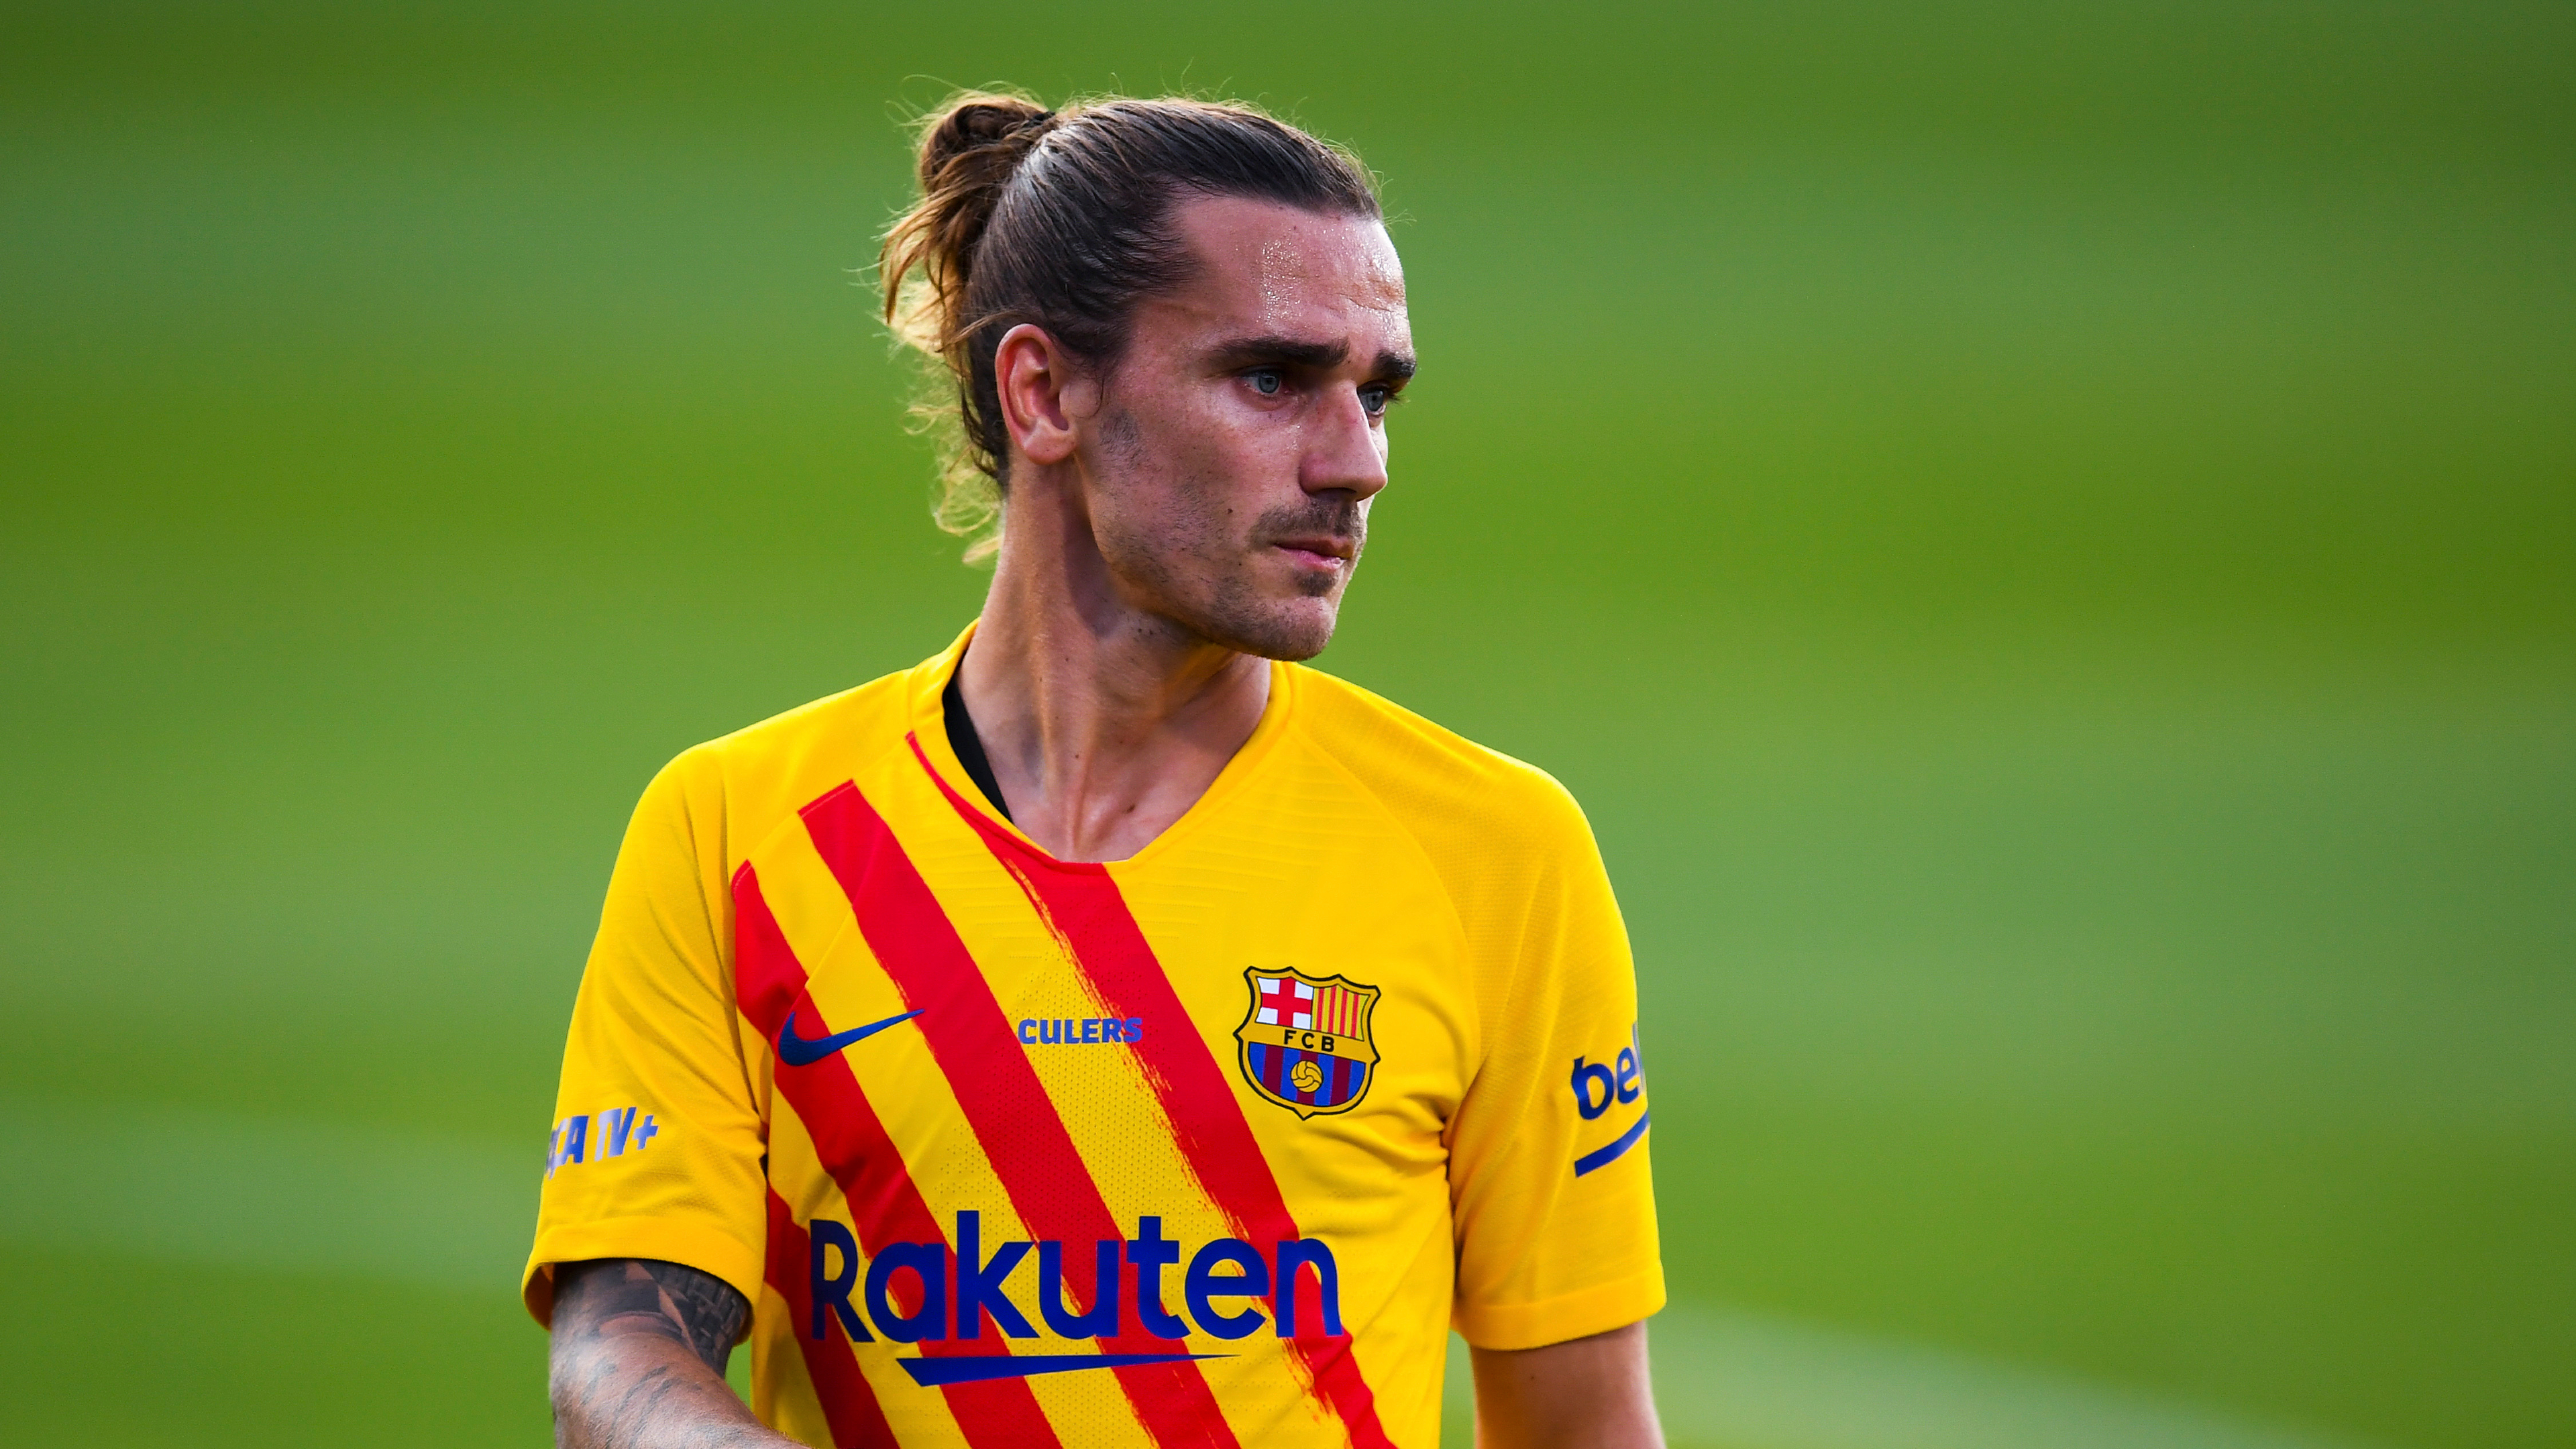 'I still need time to adapt' - Griezmann calls for patience from Barca fans